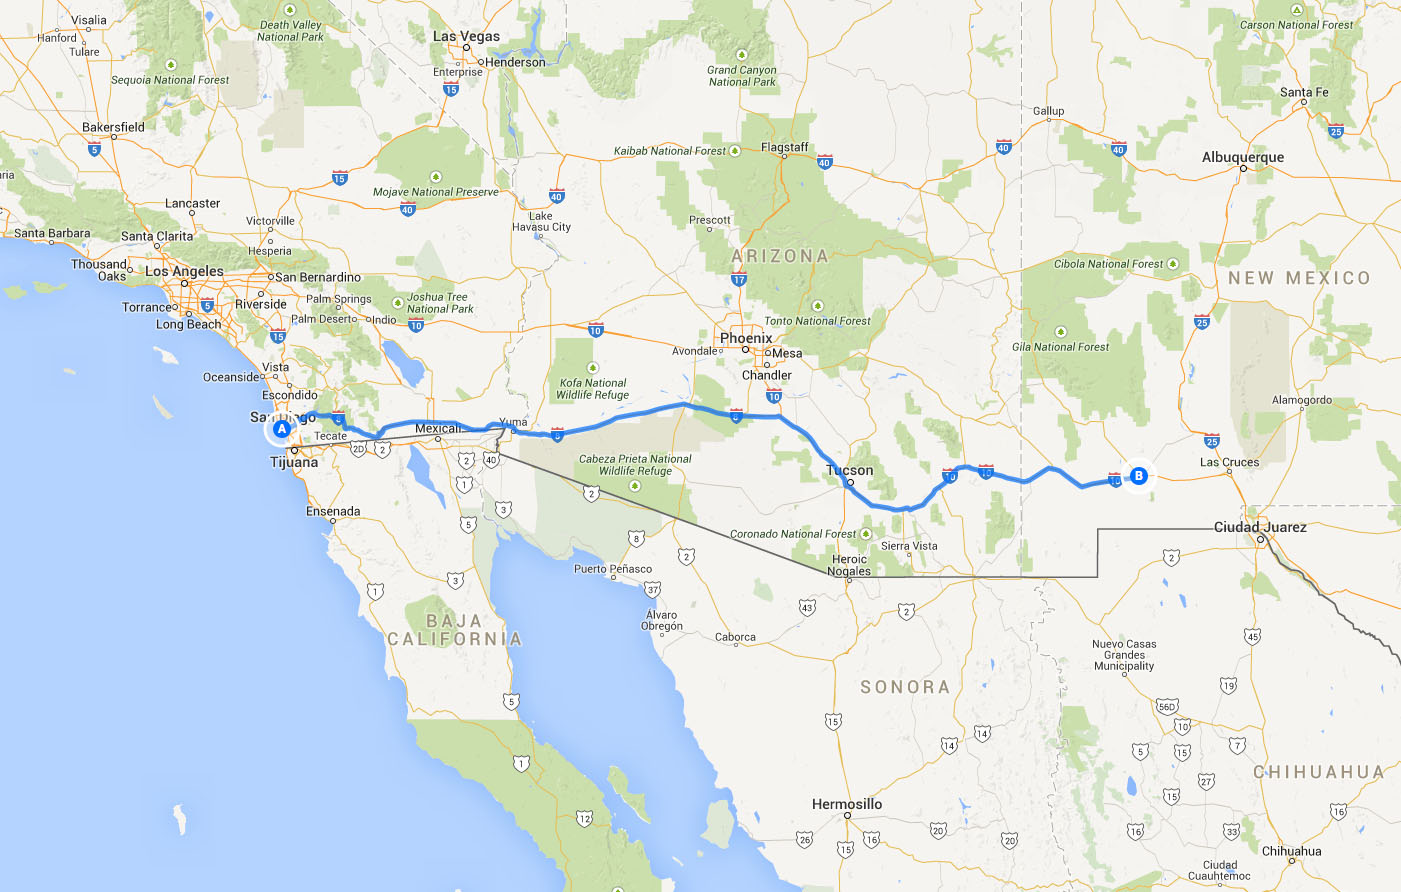 driving from San Diego to New Mexico